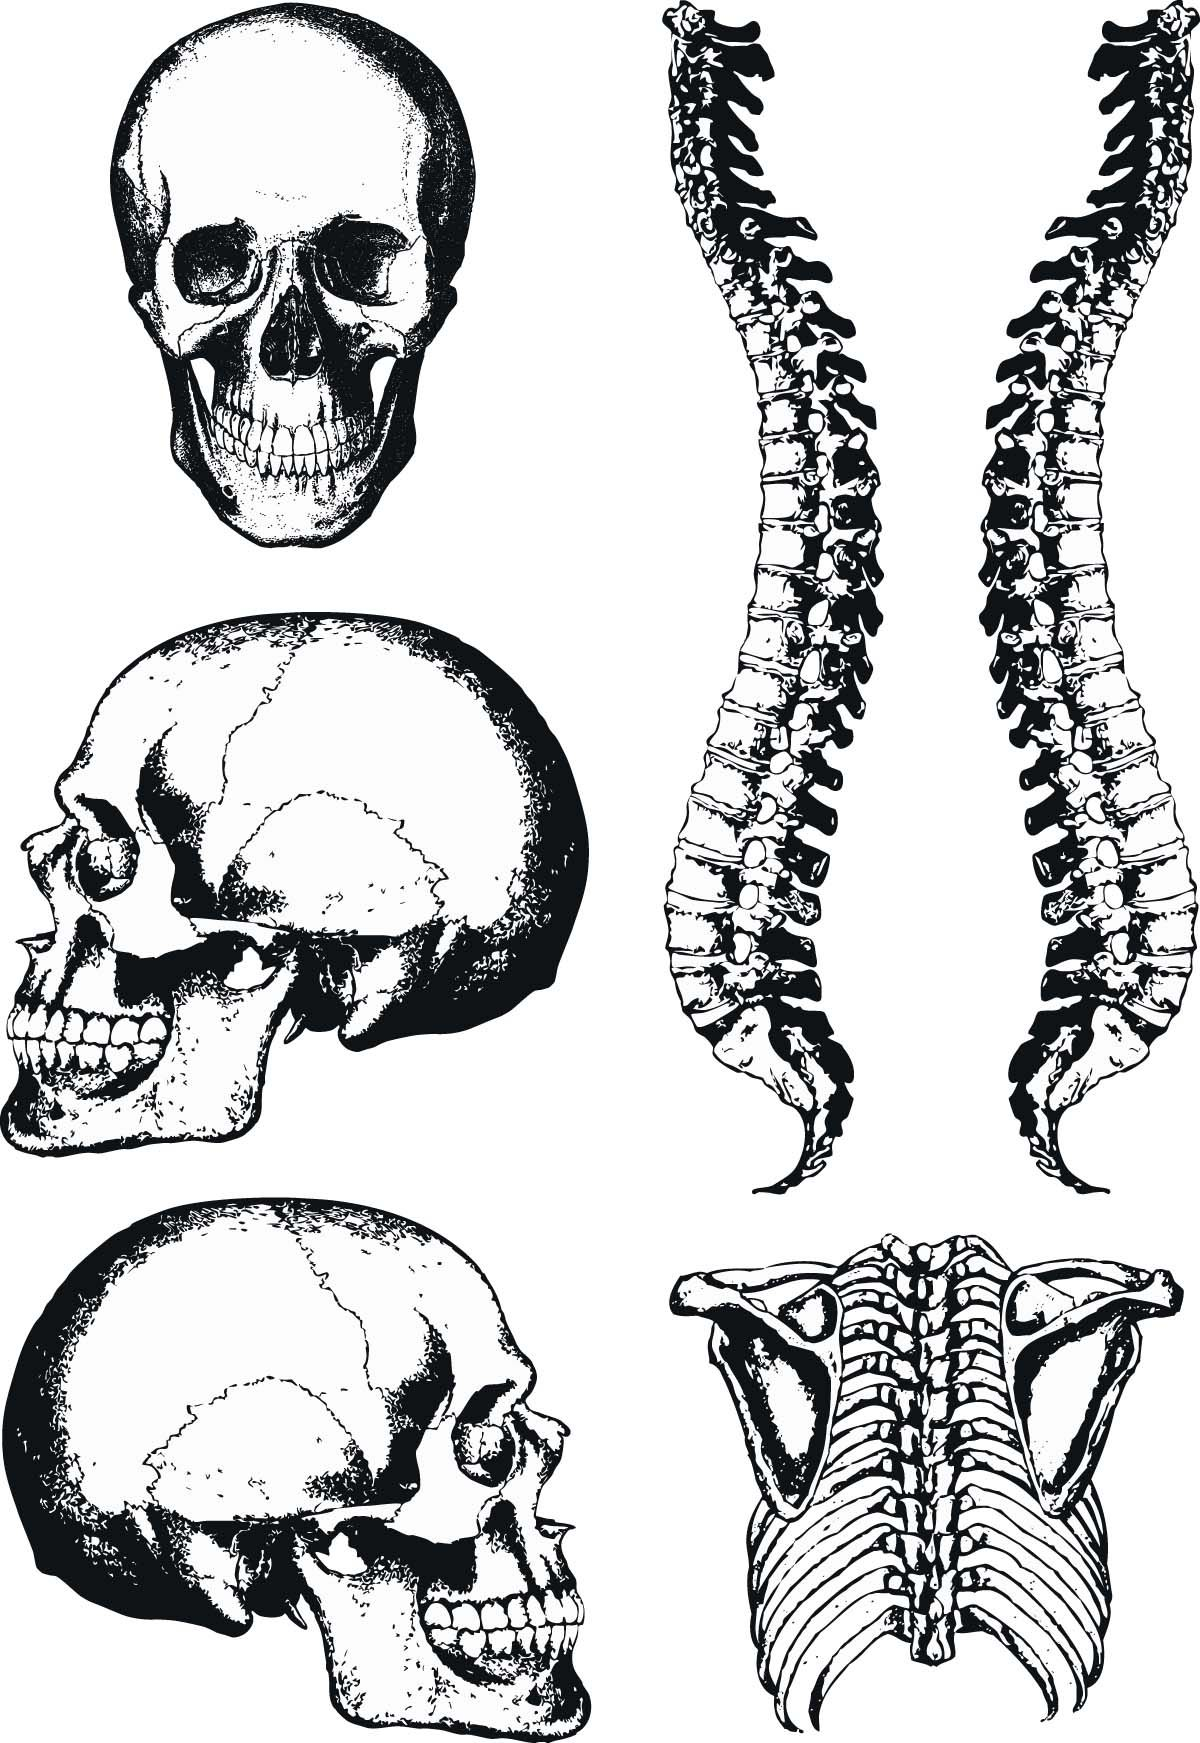 1200x1743 Human Anatomy Graphic Skull And Spine Vector Free Vectors,cards